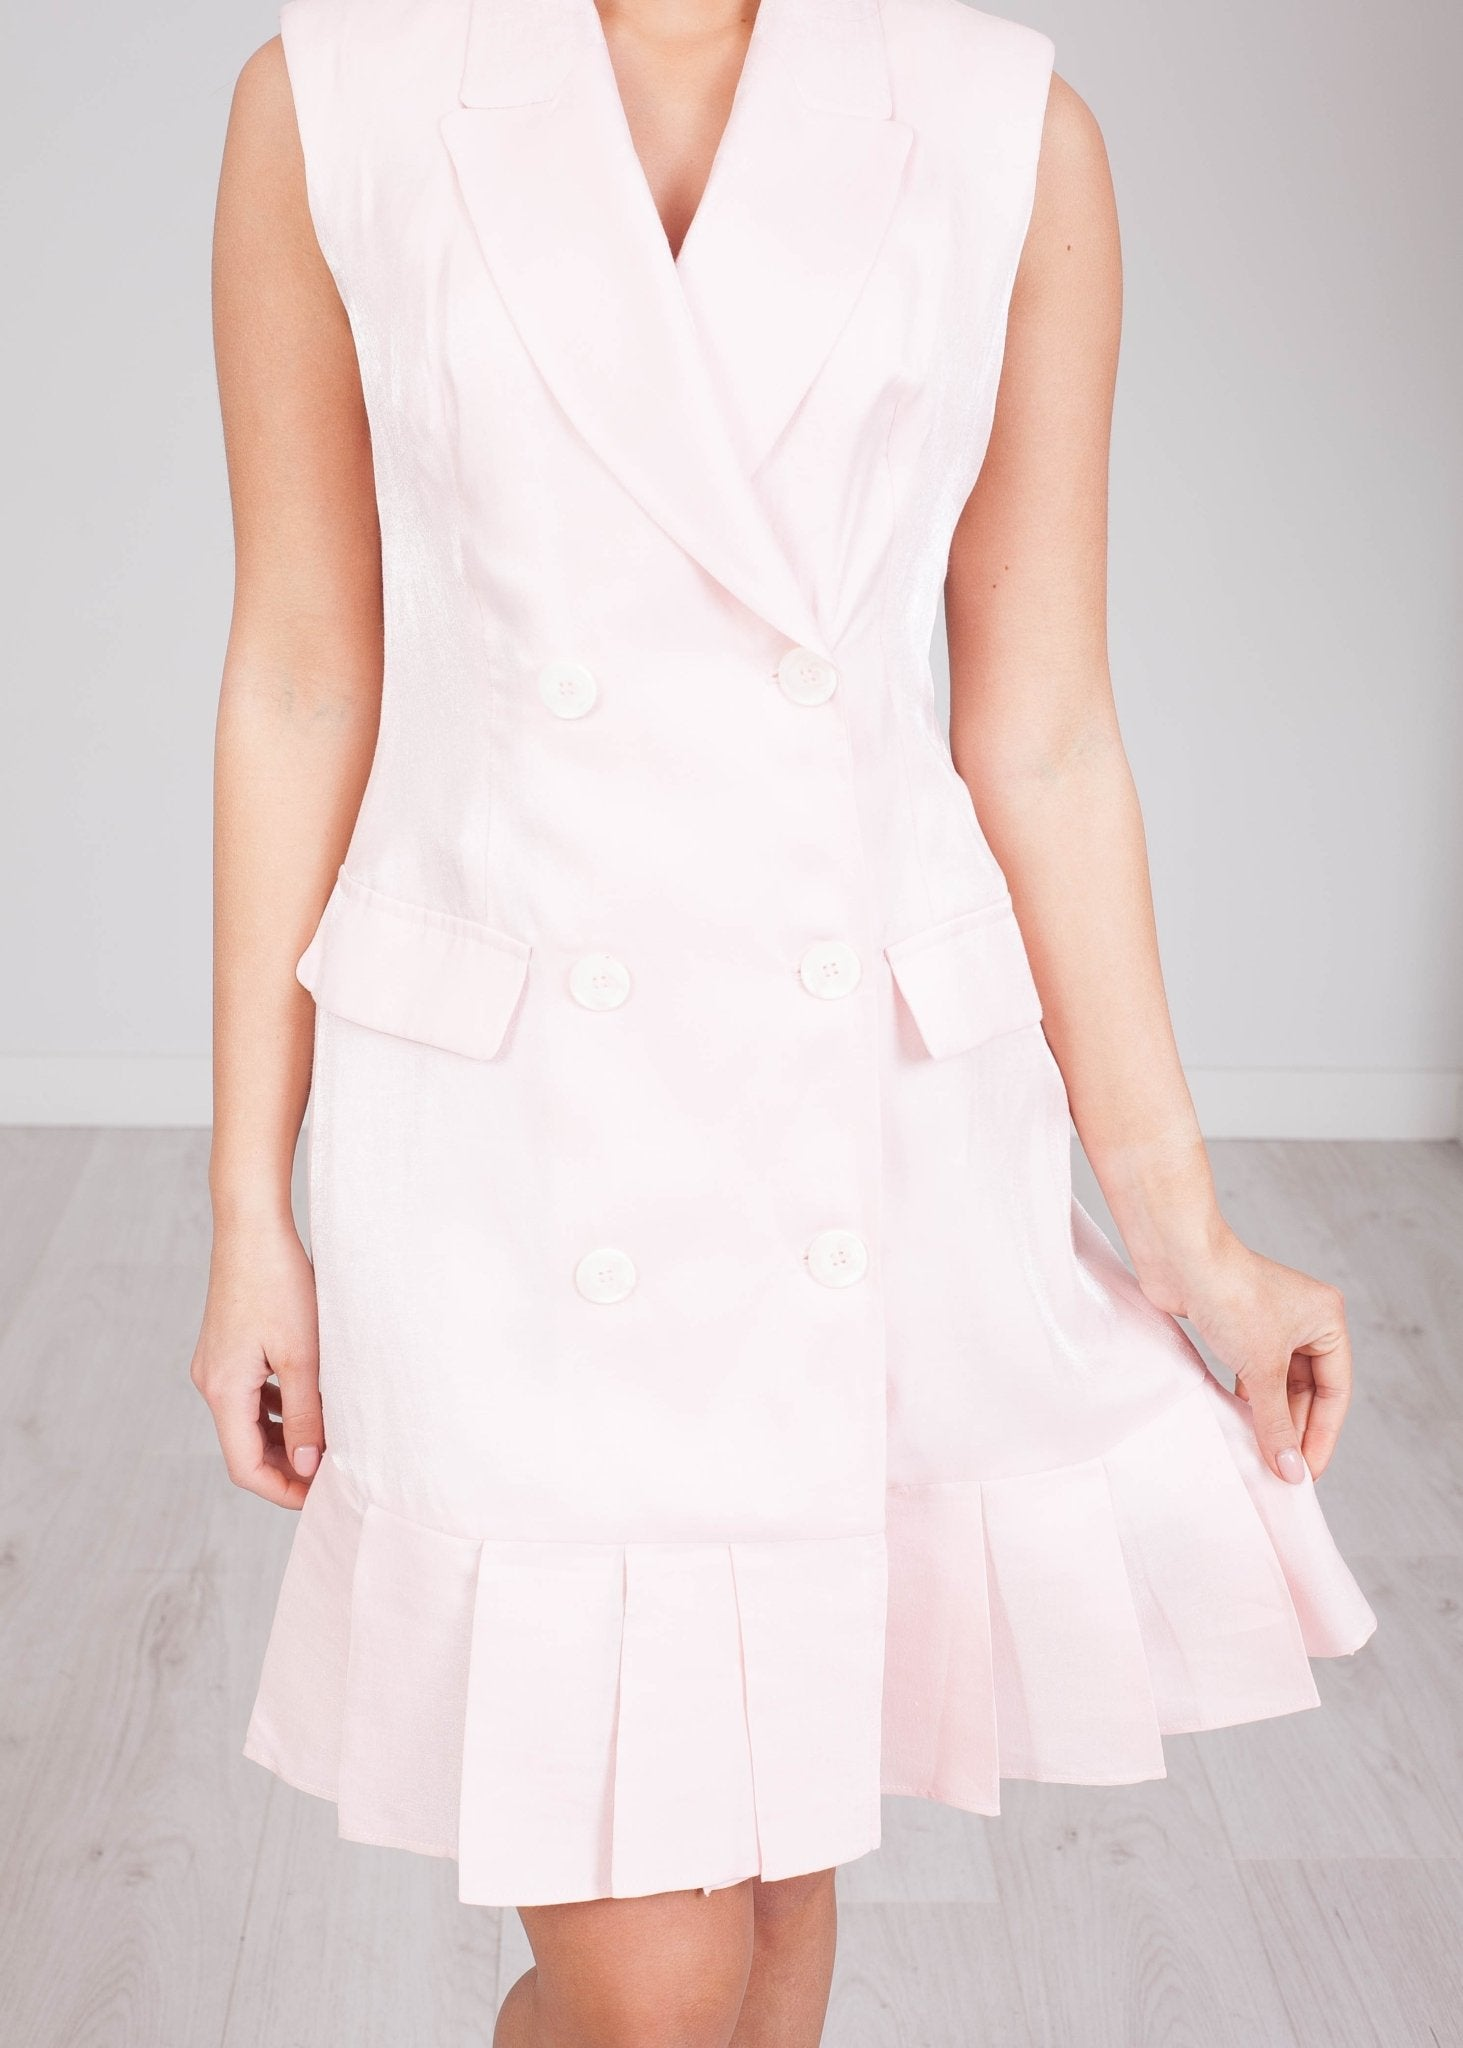 Savannah Baby Pink Blazer Dress - The Walk in Wardrobe